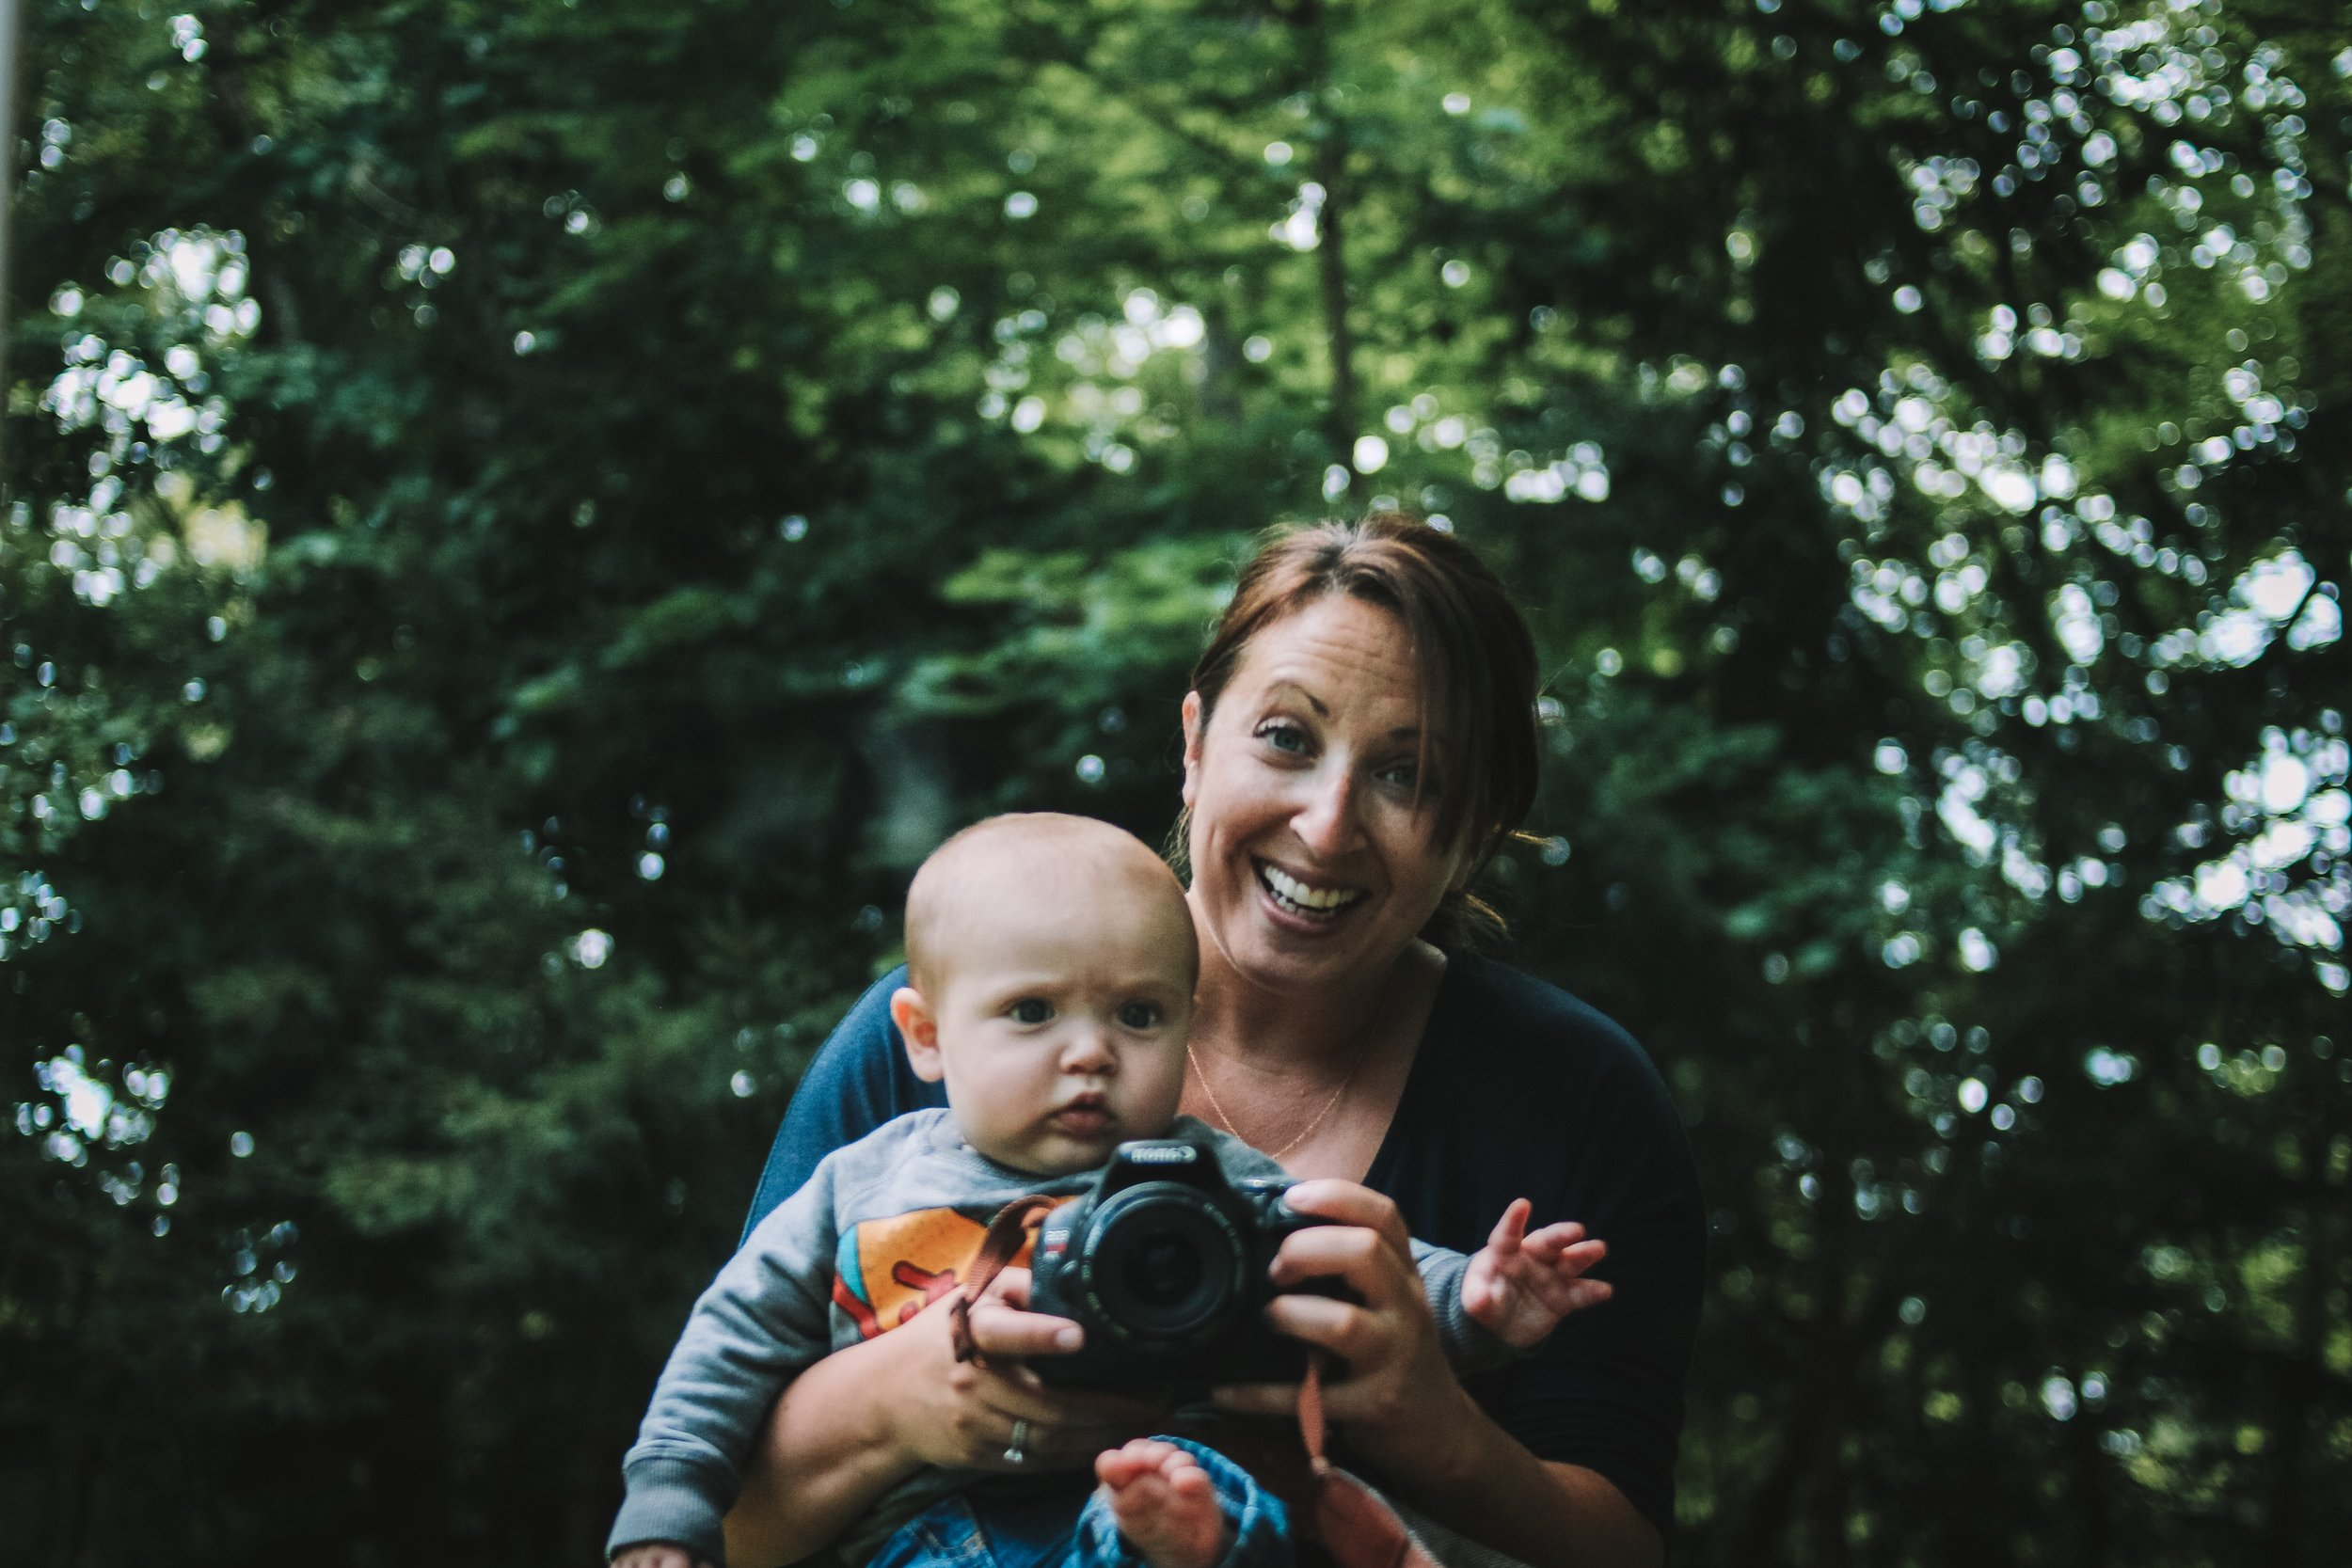 Mom guilt: I've been beating myself up. By Sarah Hartley, Editor in Chief of Holl & Lane Magazine. www.hollandlanemag.com